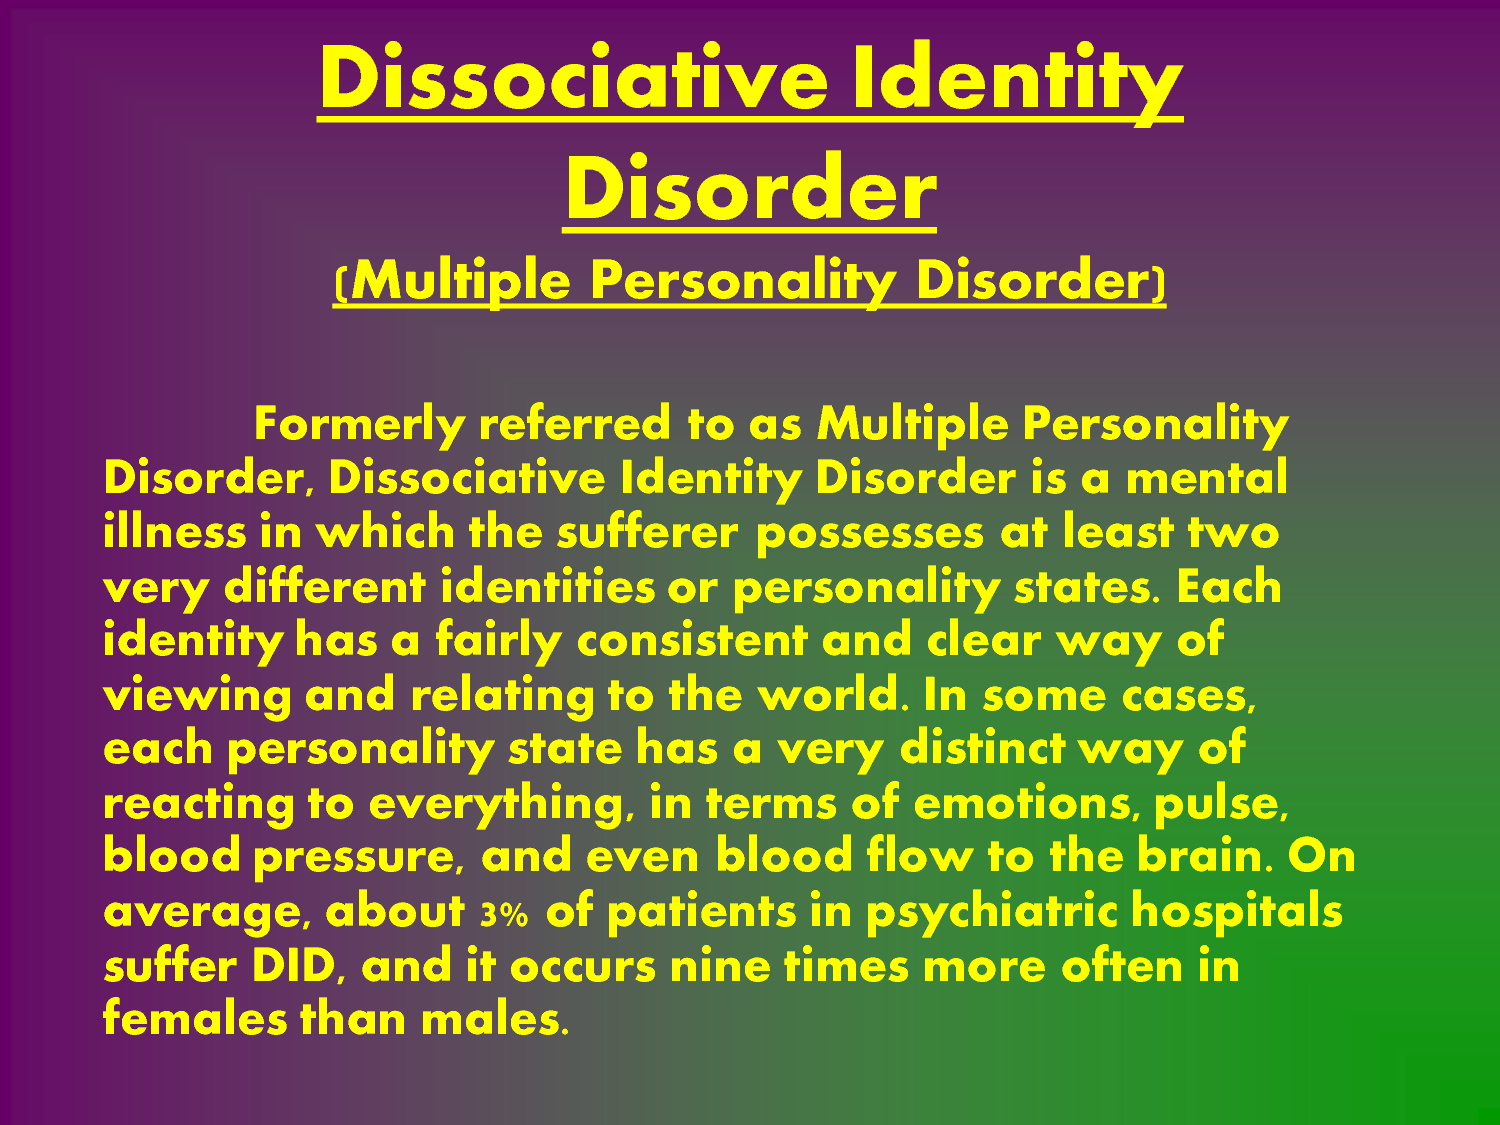 dissociative disorders essay Free dissociative identity disorder papers, essays, and research papers.